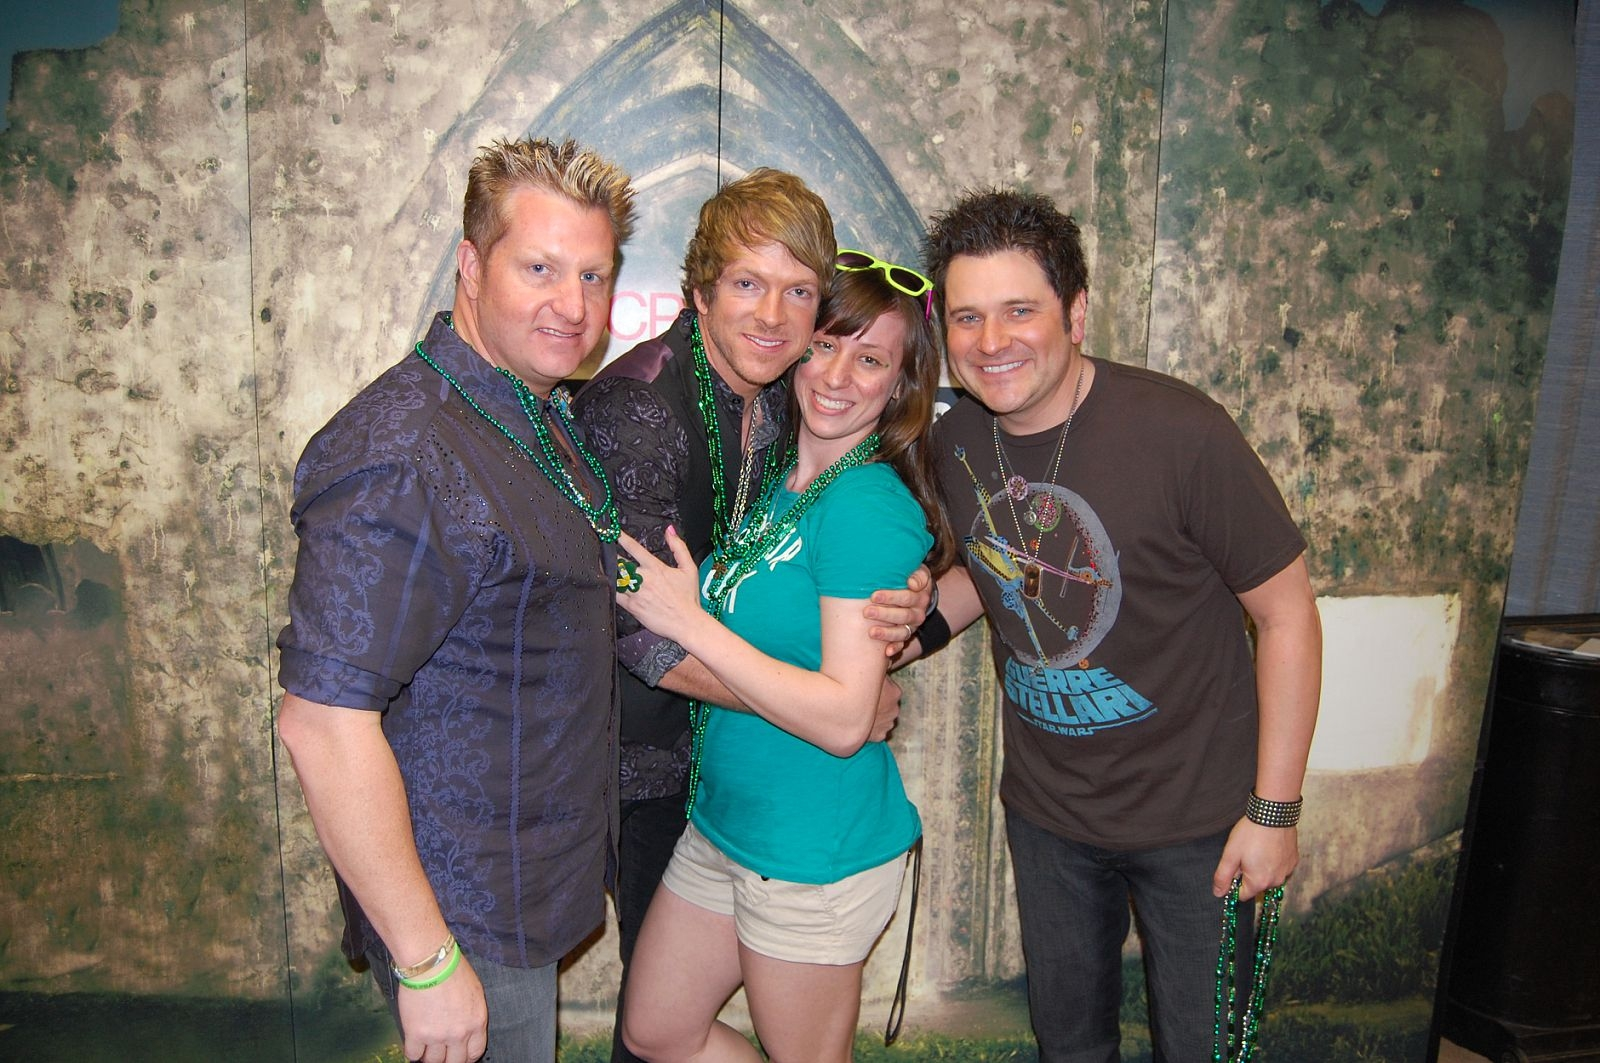 Cmr fan review rascal flatts new orleans country music rocks one of our lucky readers won a vip rascal flatts concert package which included a meet greet with the band thanks to our friends at jcpenney kristyandbryce Image collections